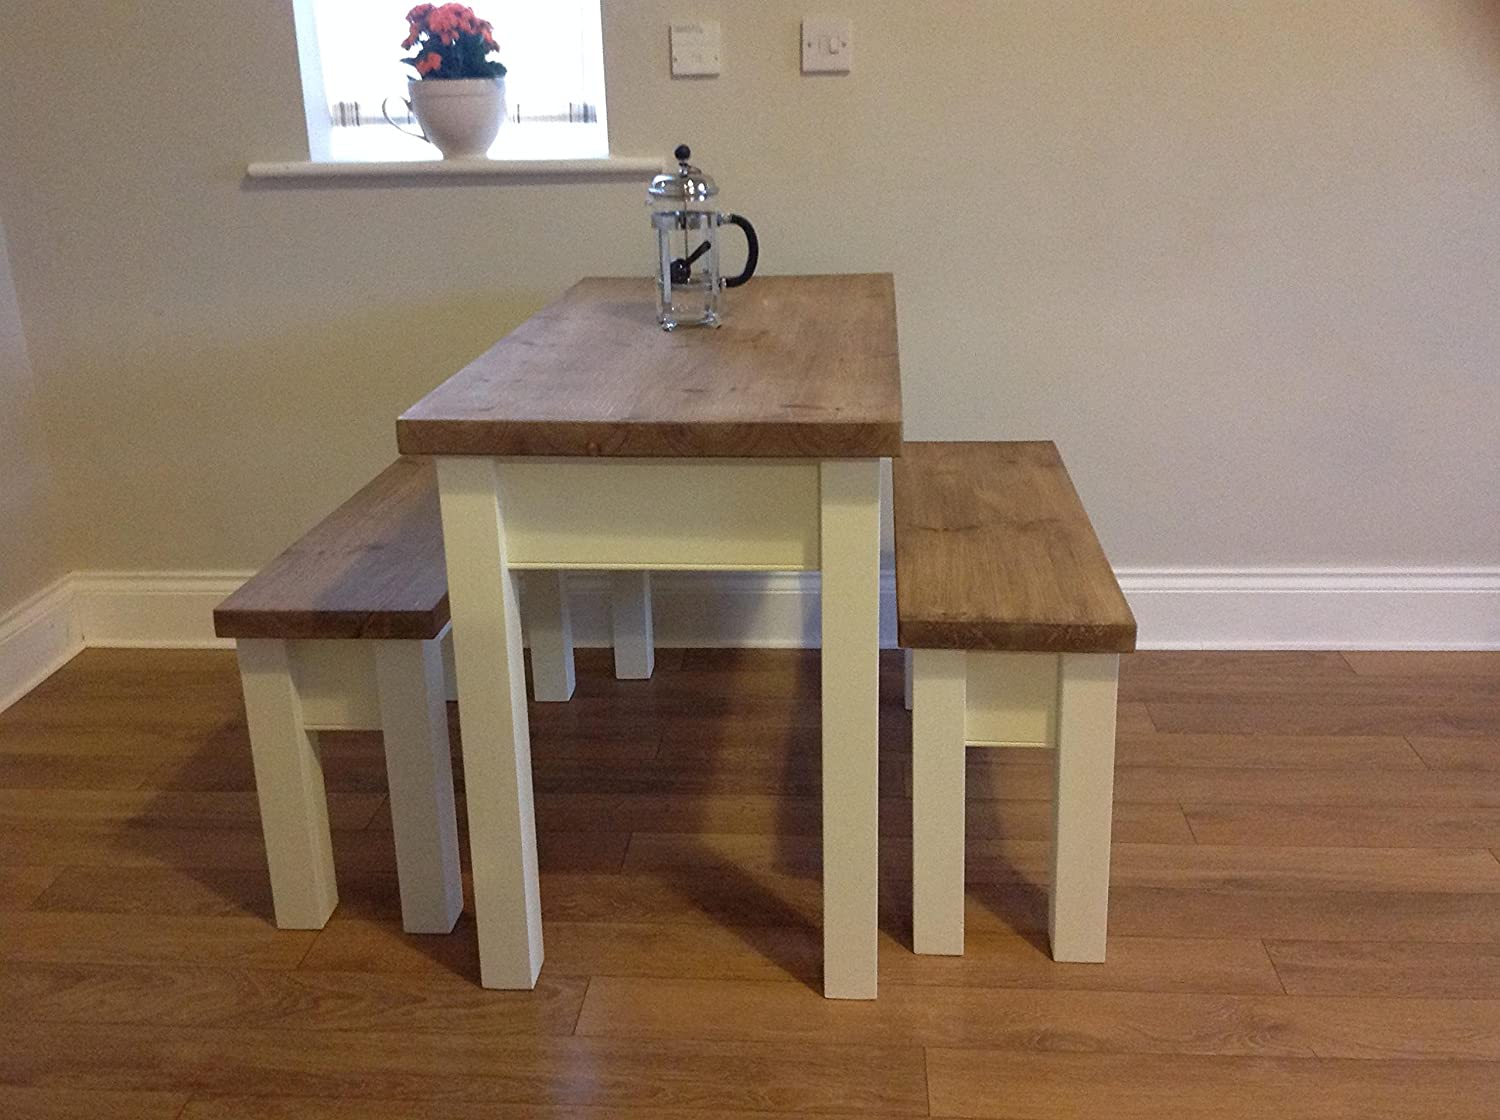 Peachy Greenhill Furniture Chunky Farmhouse Table Benches Seats 4 Lamtechconsult Wood Chair Design Ideas Lamtechconsultcom